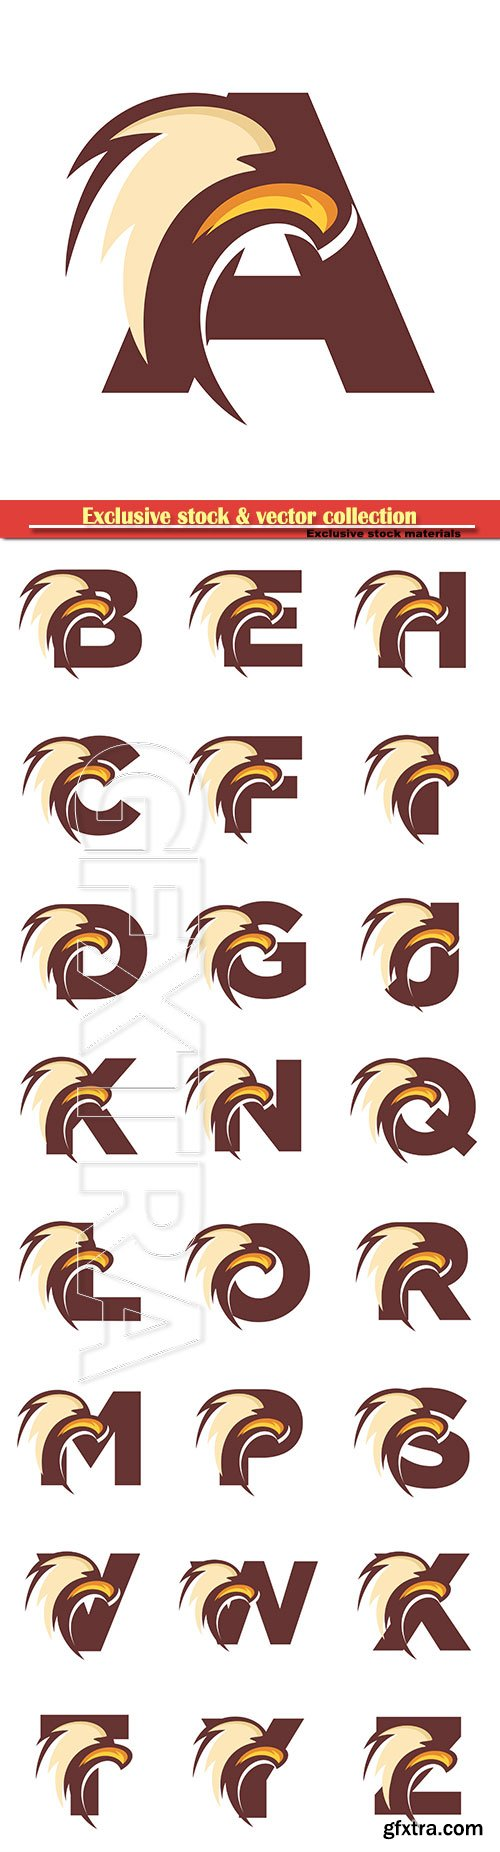 Eagle font vector alphabet illustration